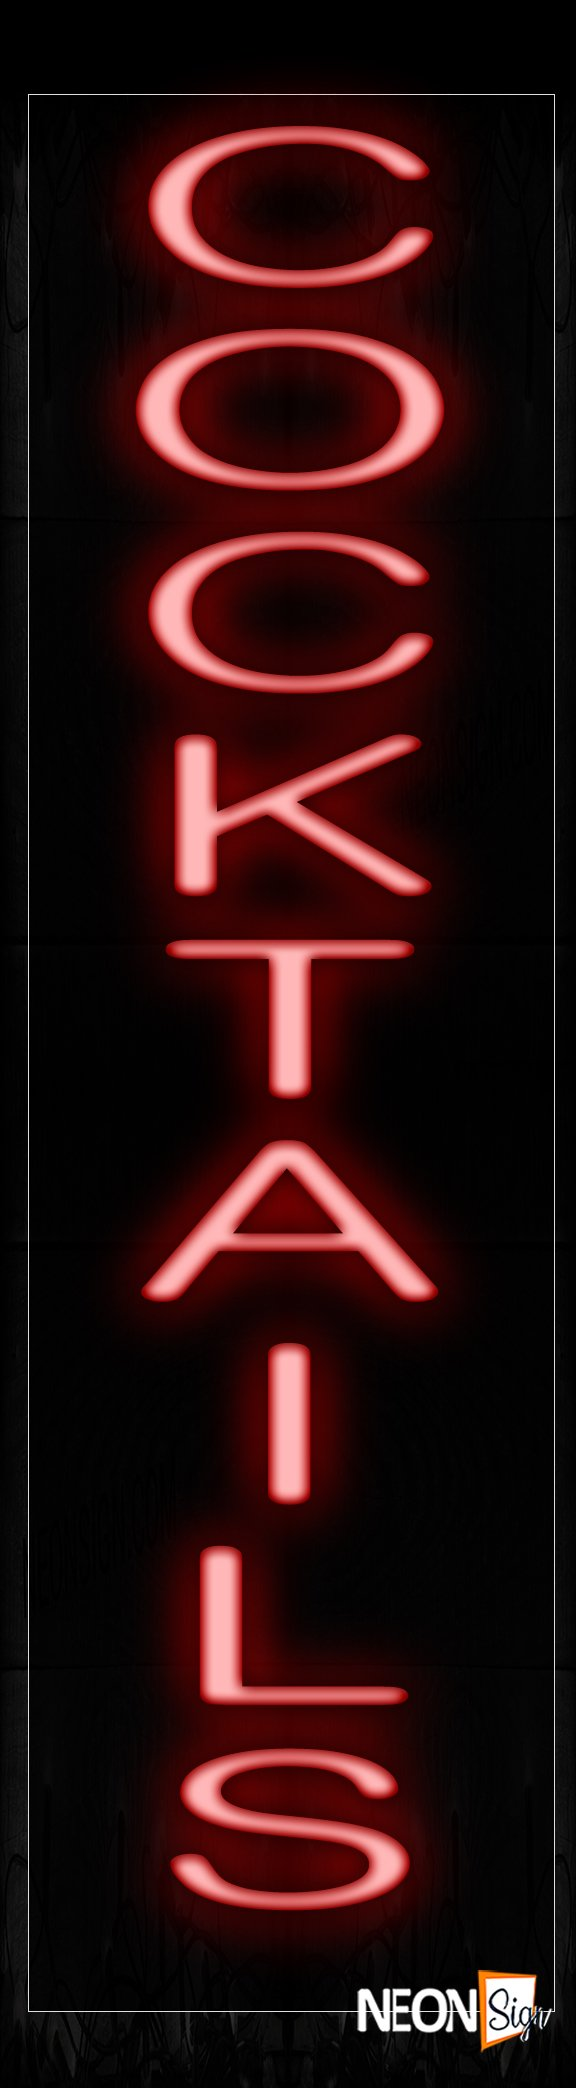 Image of 12424 Cocktails Neon Signs_8x29 Black Backing